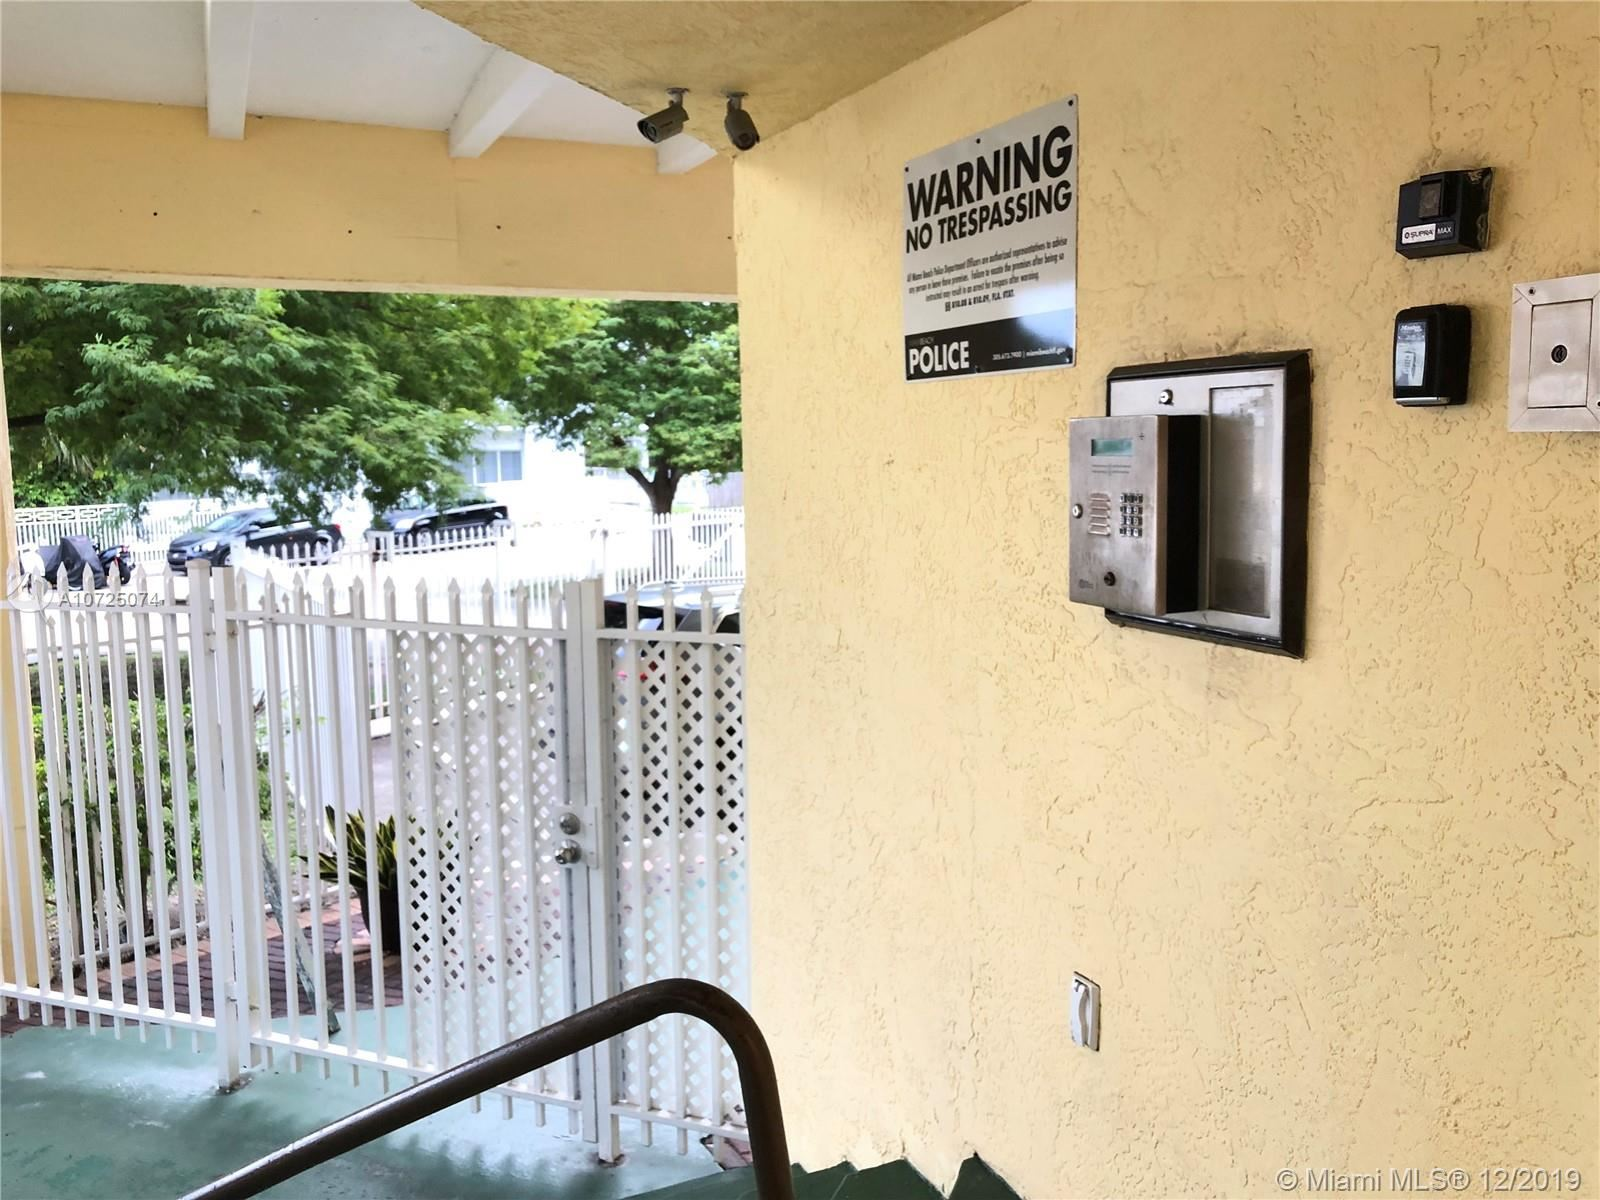 Photo 10 of Listing MLS a10725074 in 1975 Normandy Dr #504 Miami Beach FL 33141